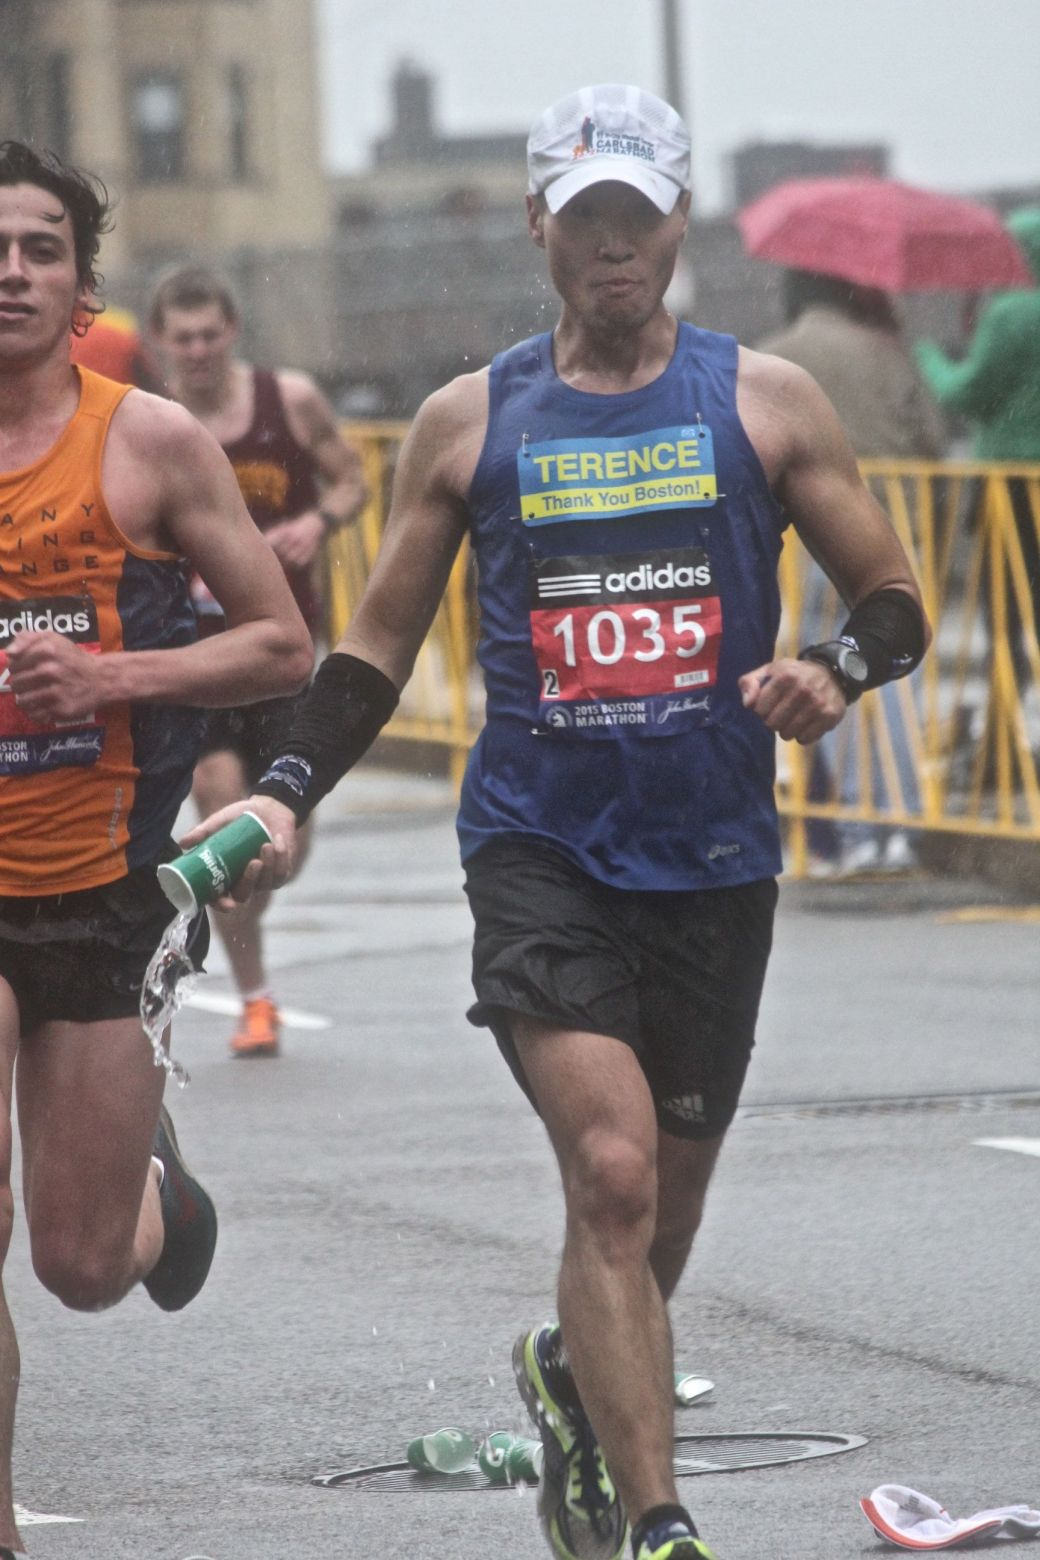 boston marathon april 20 2015 racer number 1035